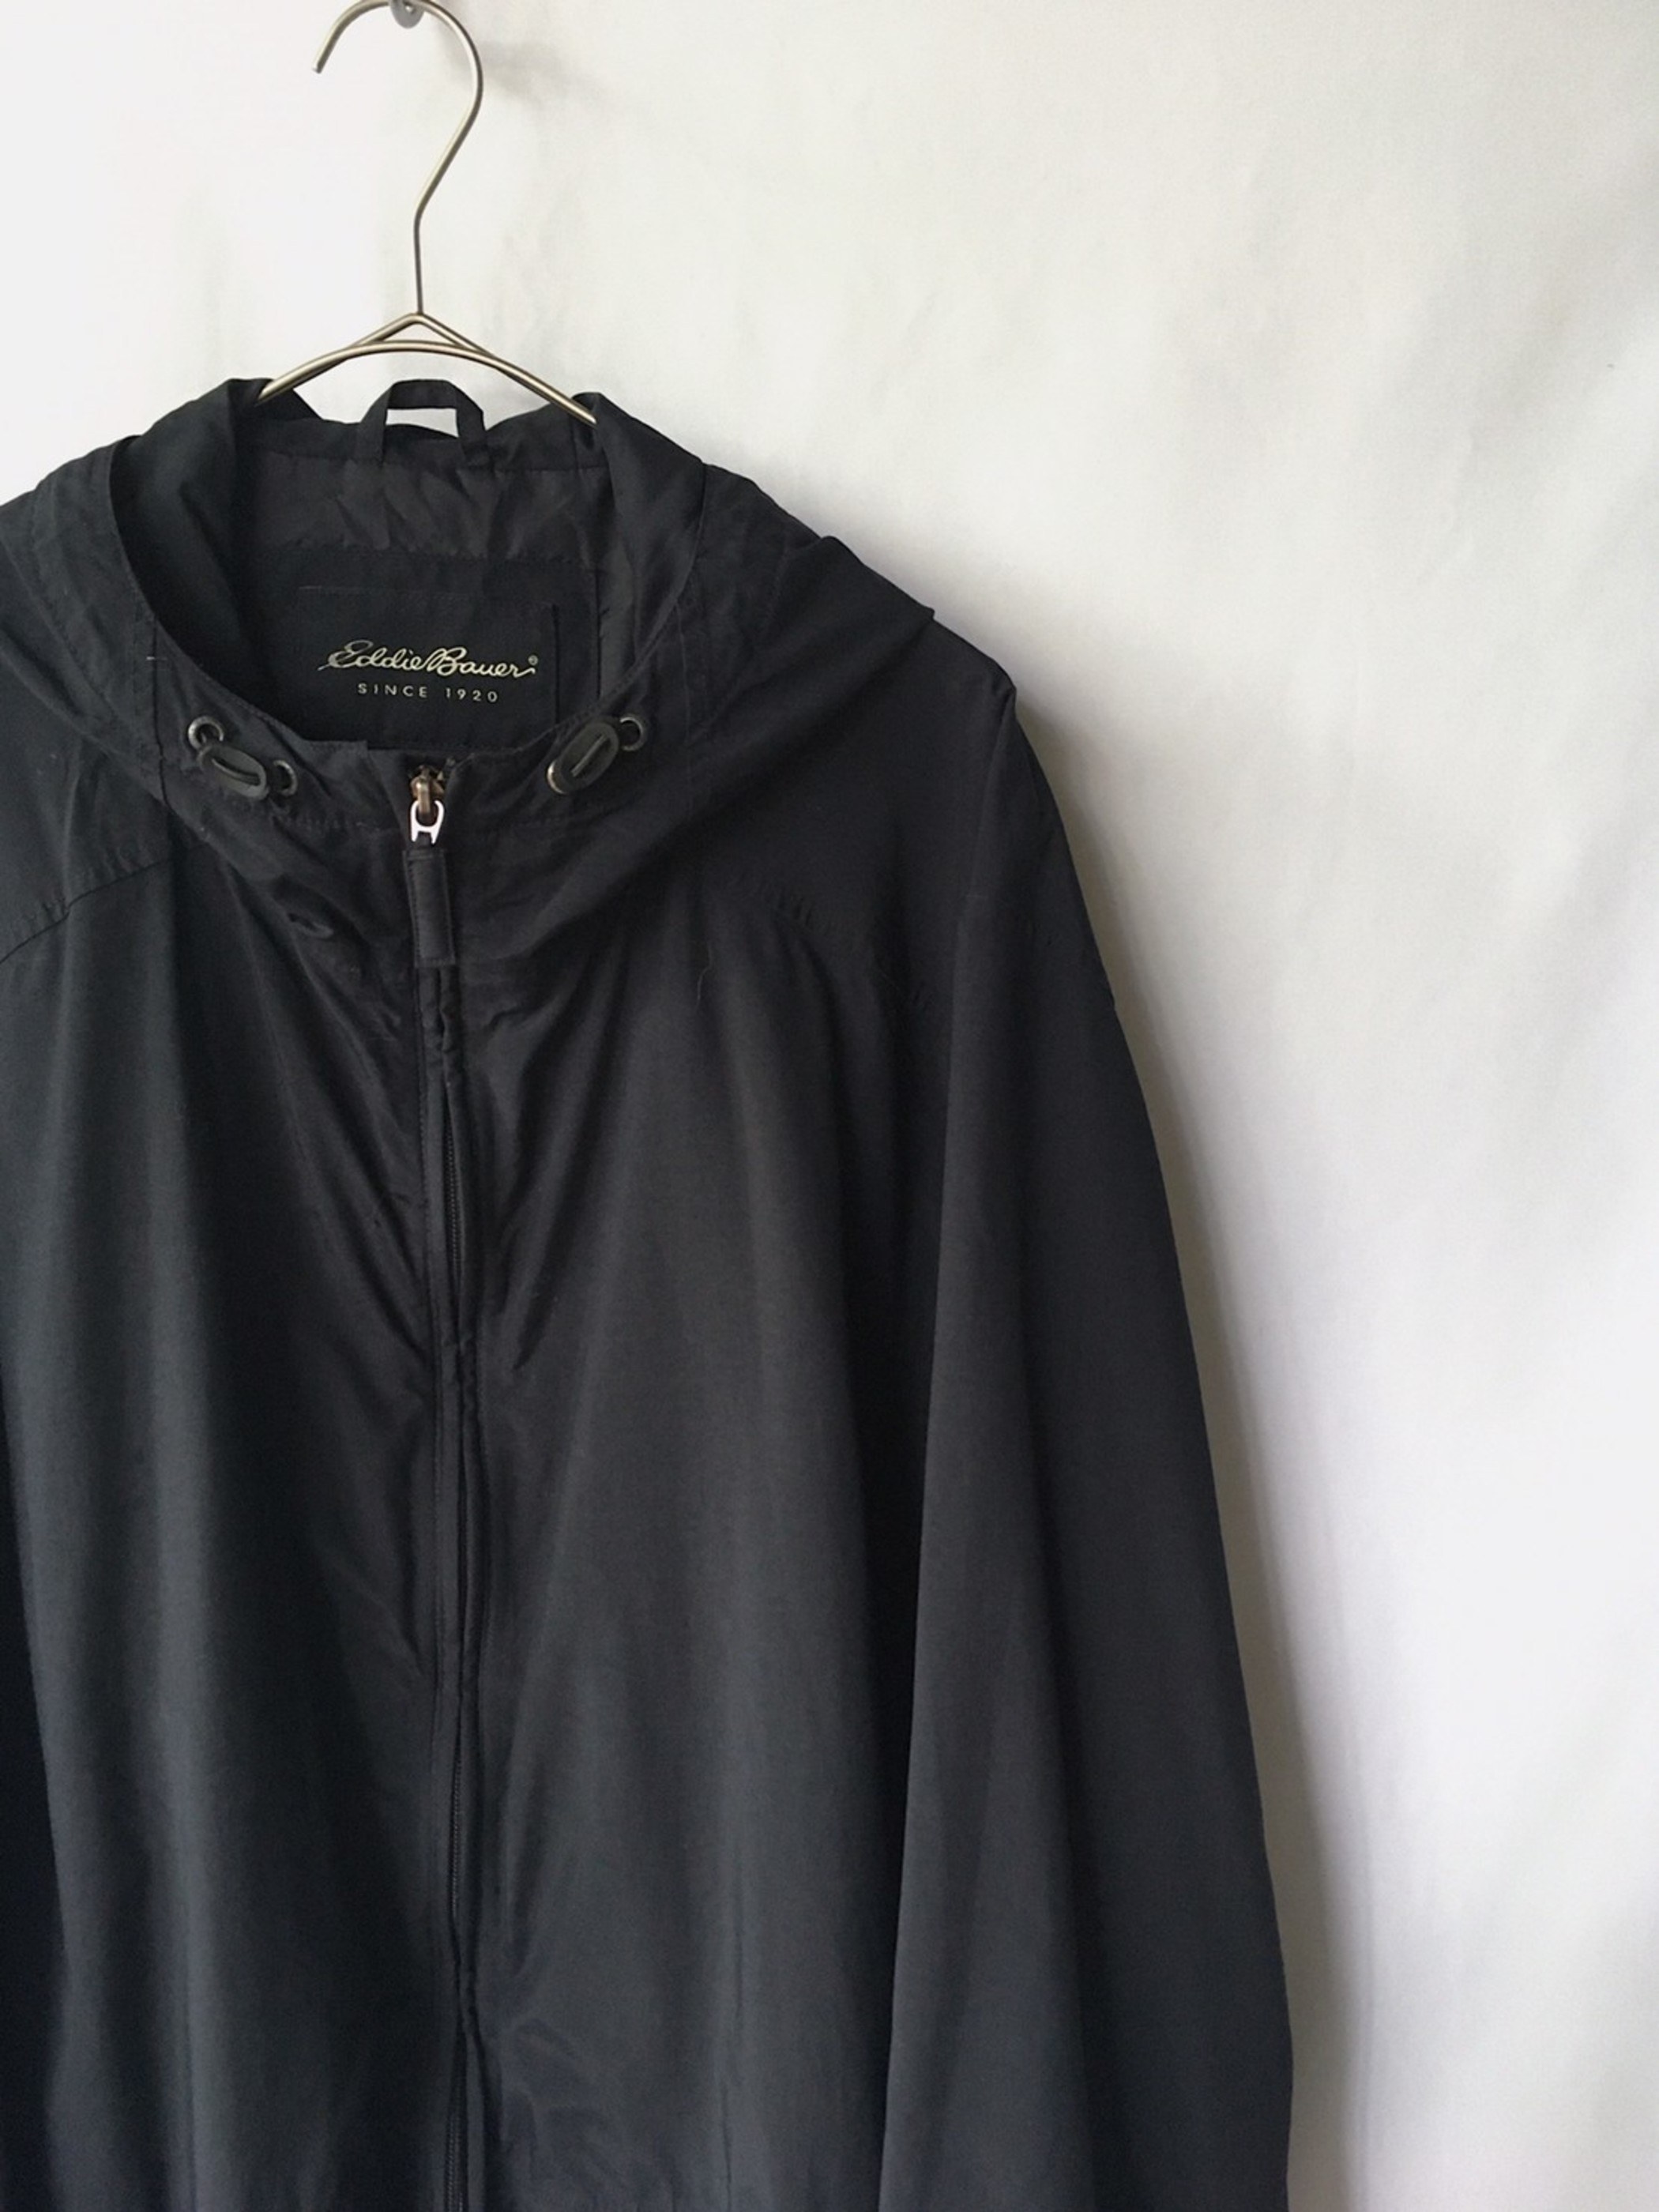 Eddie Bauer hooded long jacket 90s